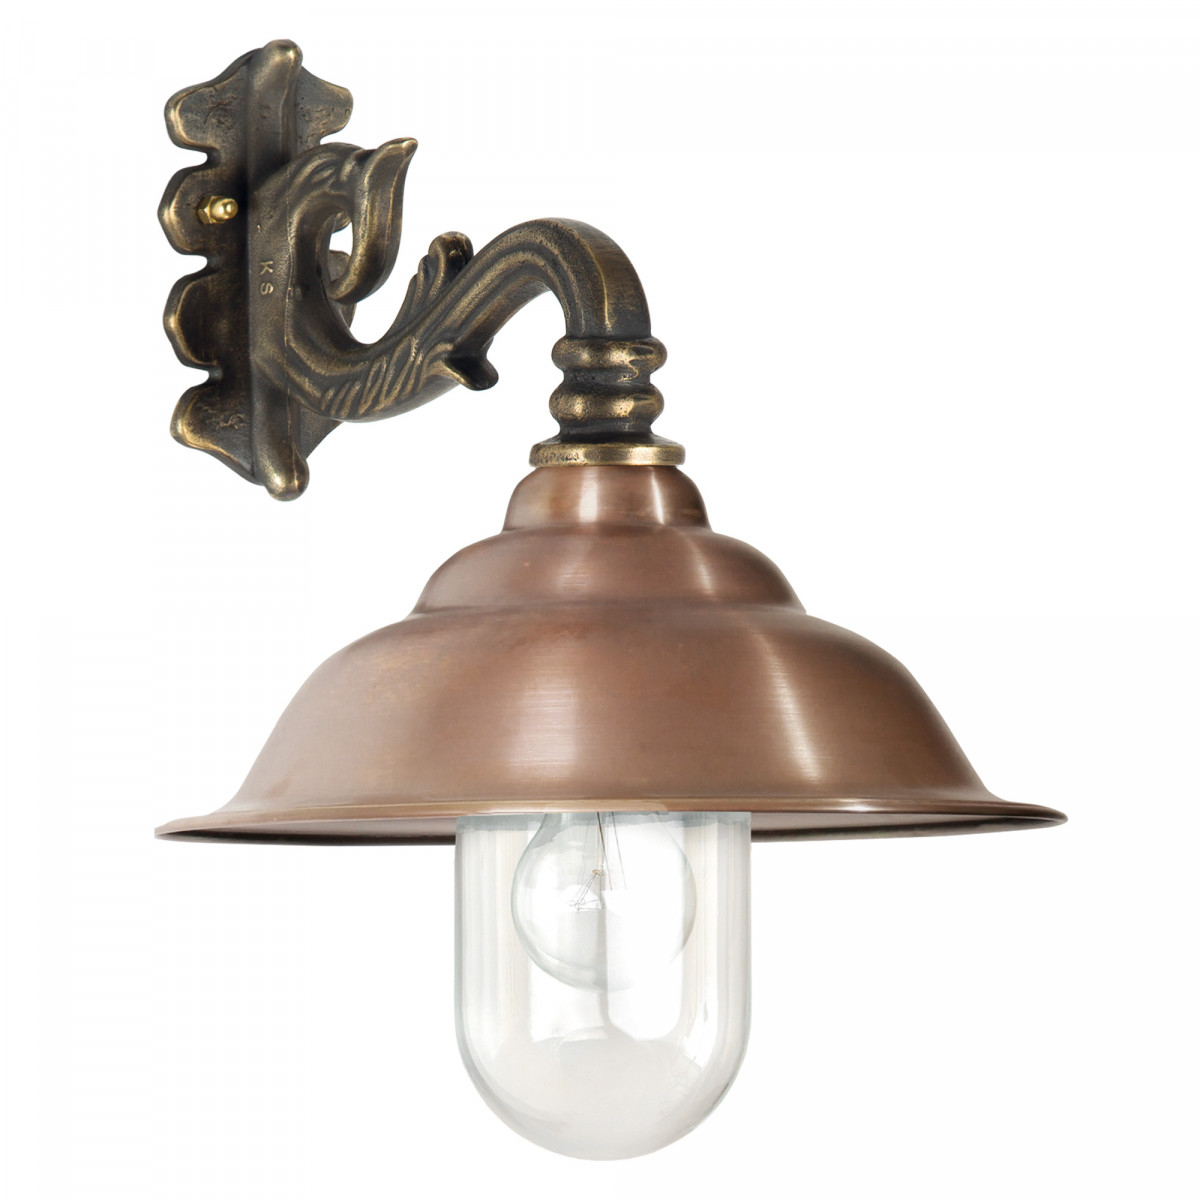 Buitenlamp Chateau Brons